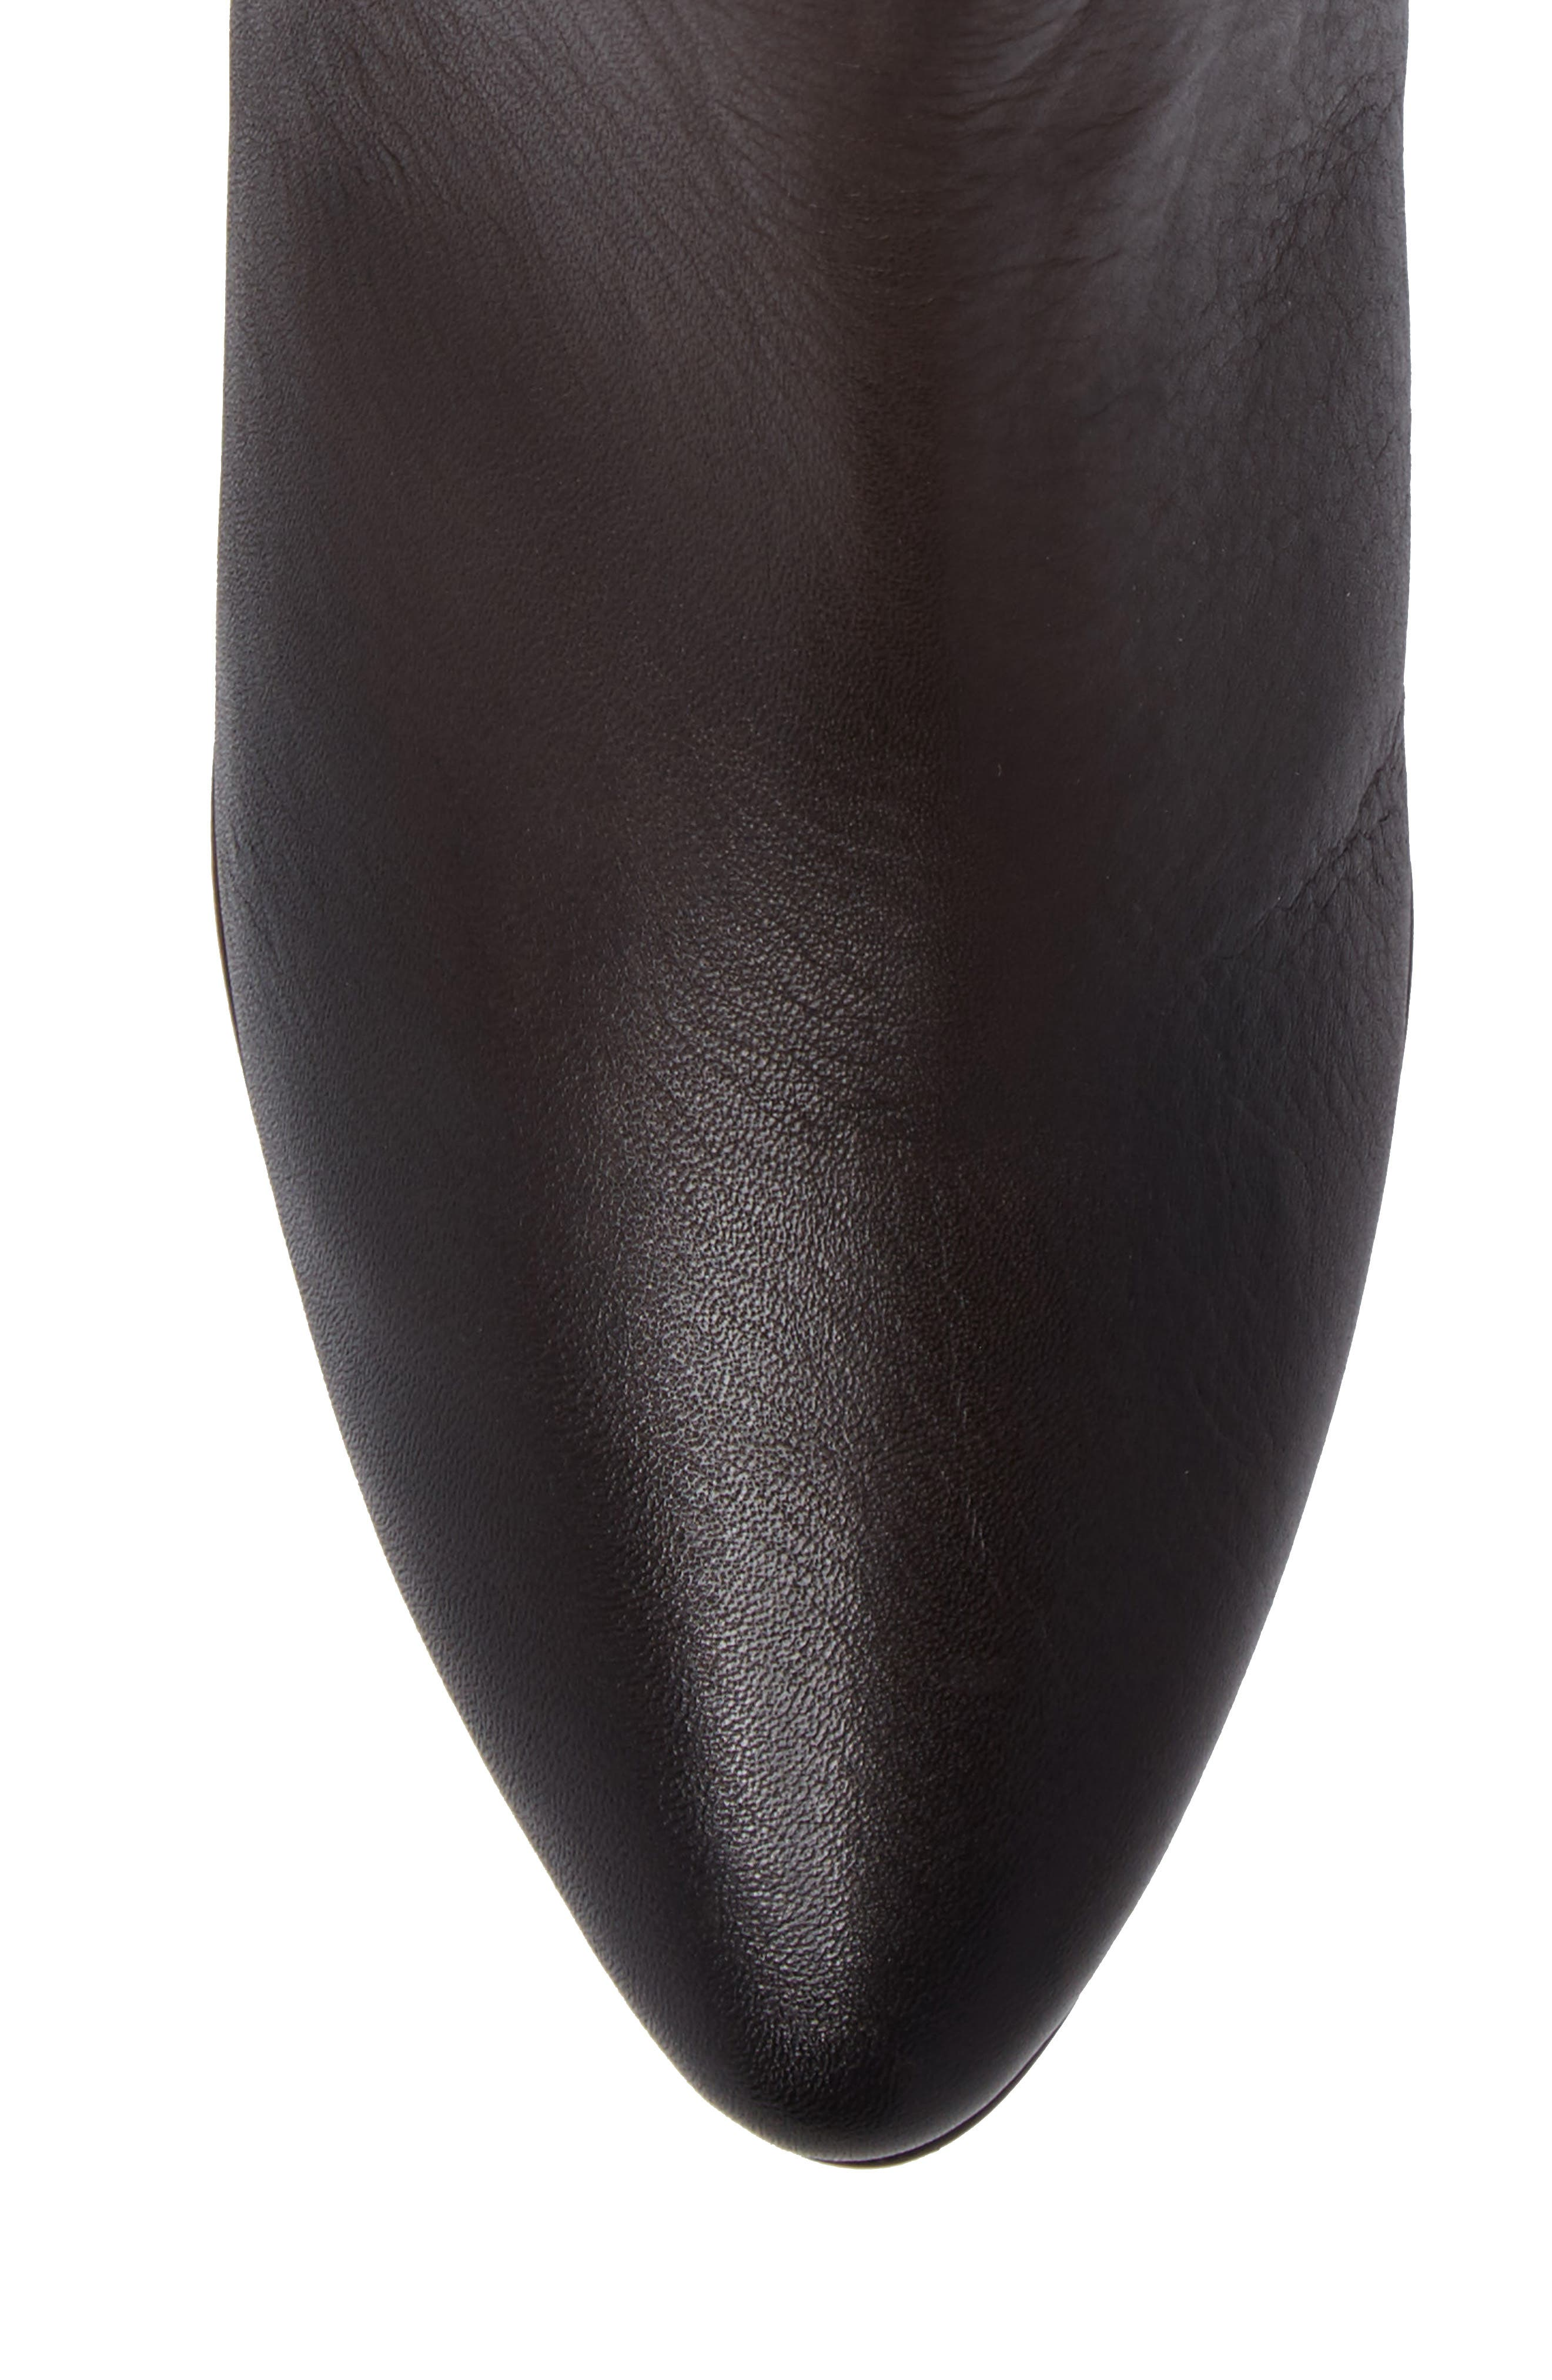 Newbury Bootie,                             Alternate thumbnail 5, color,                             Chocolate Leather